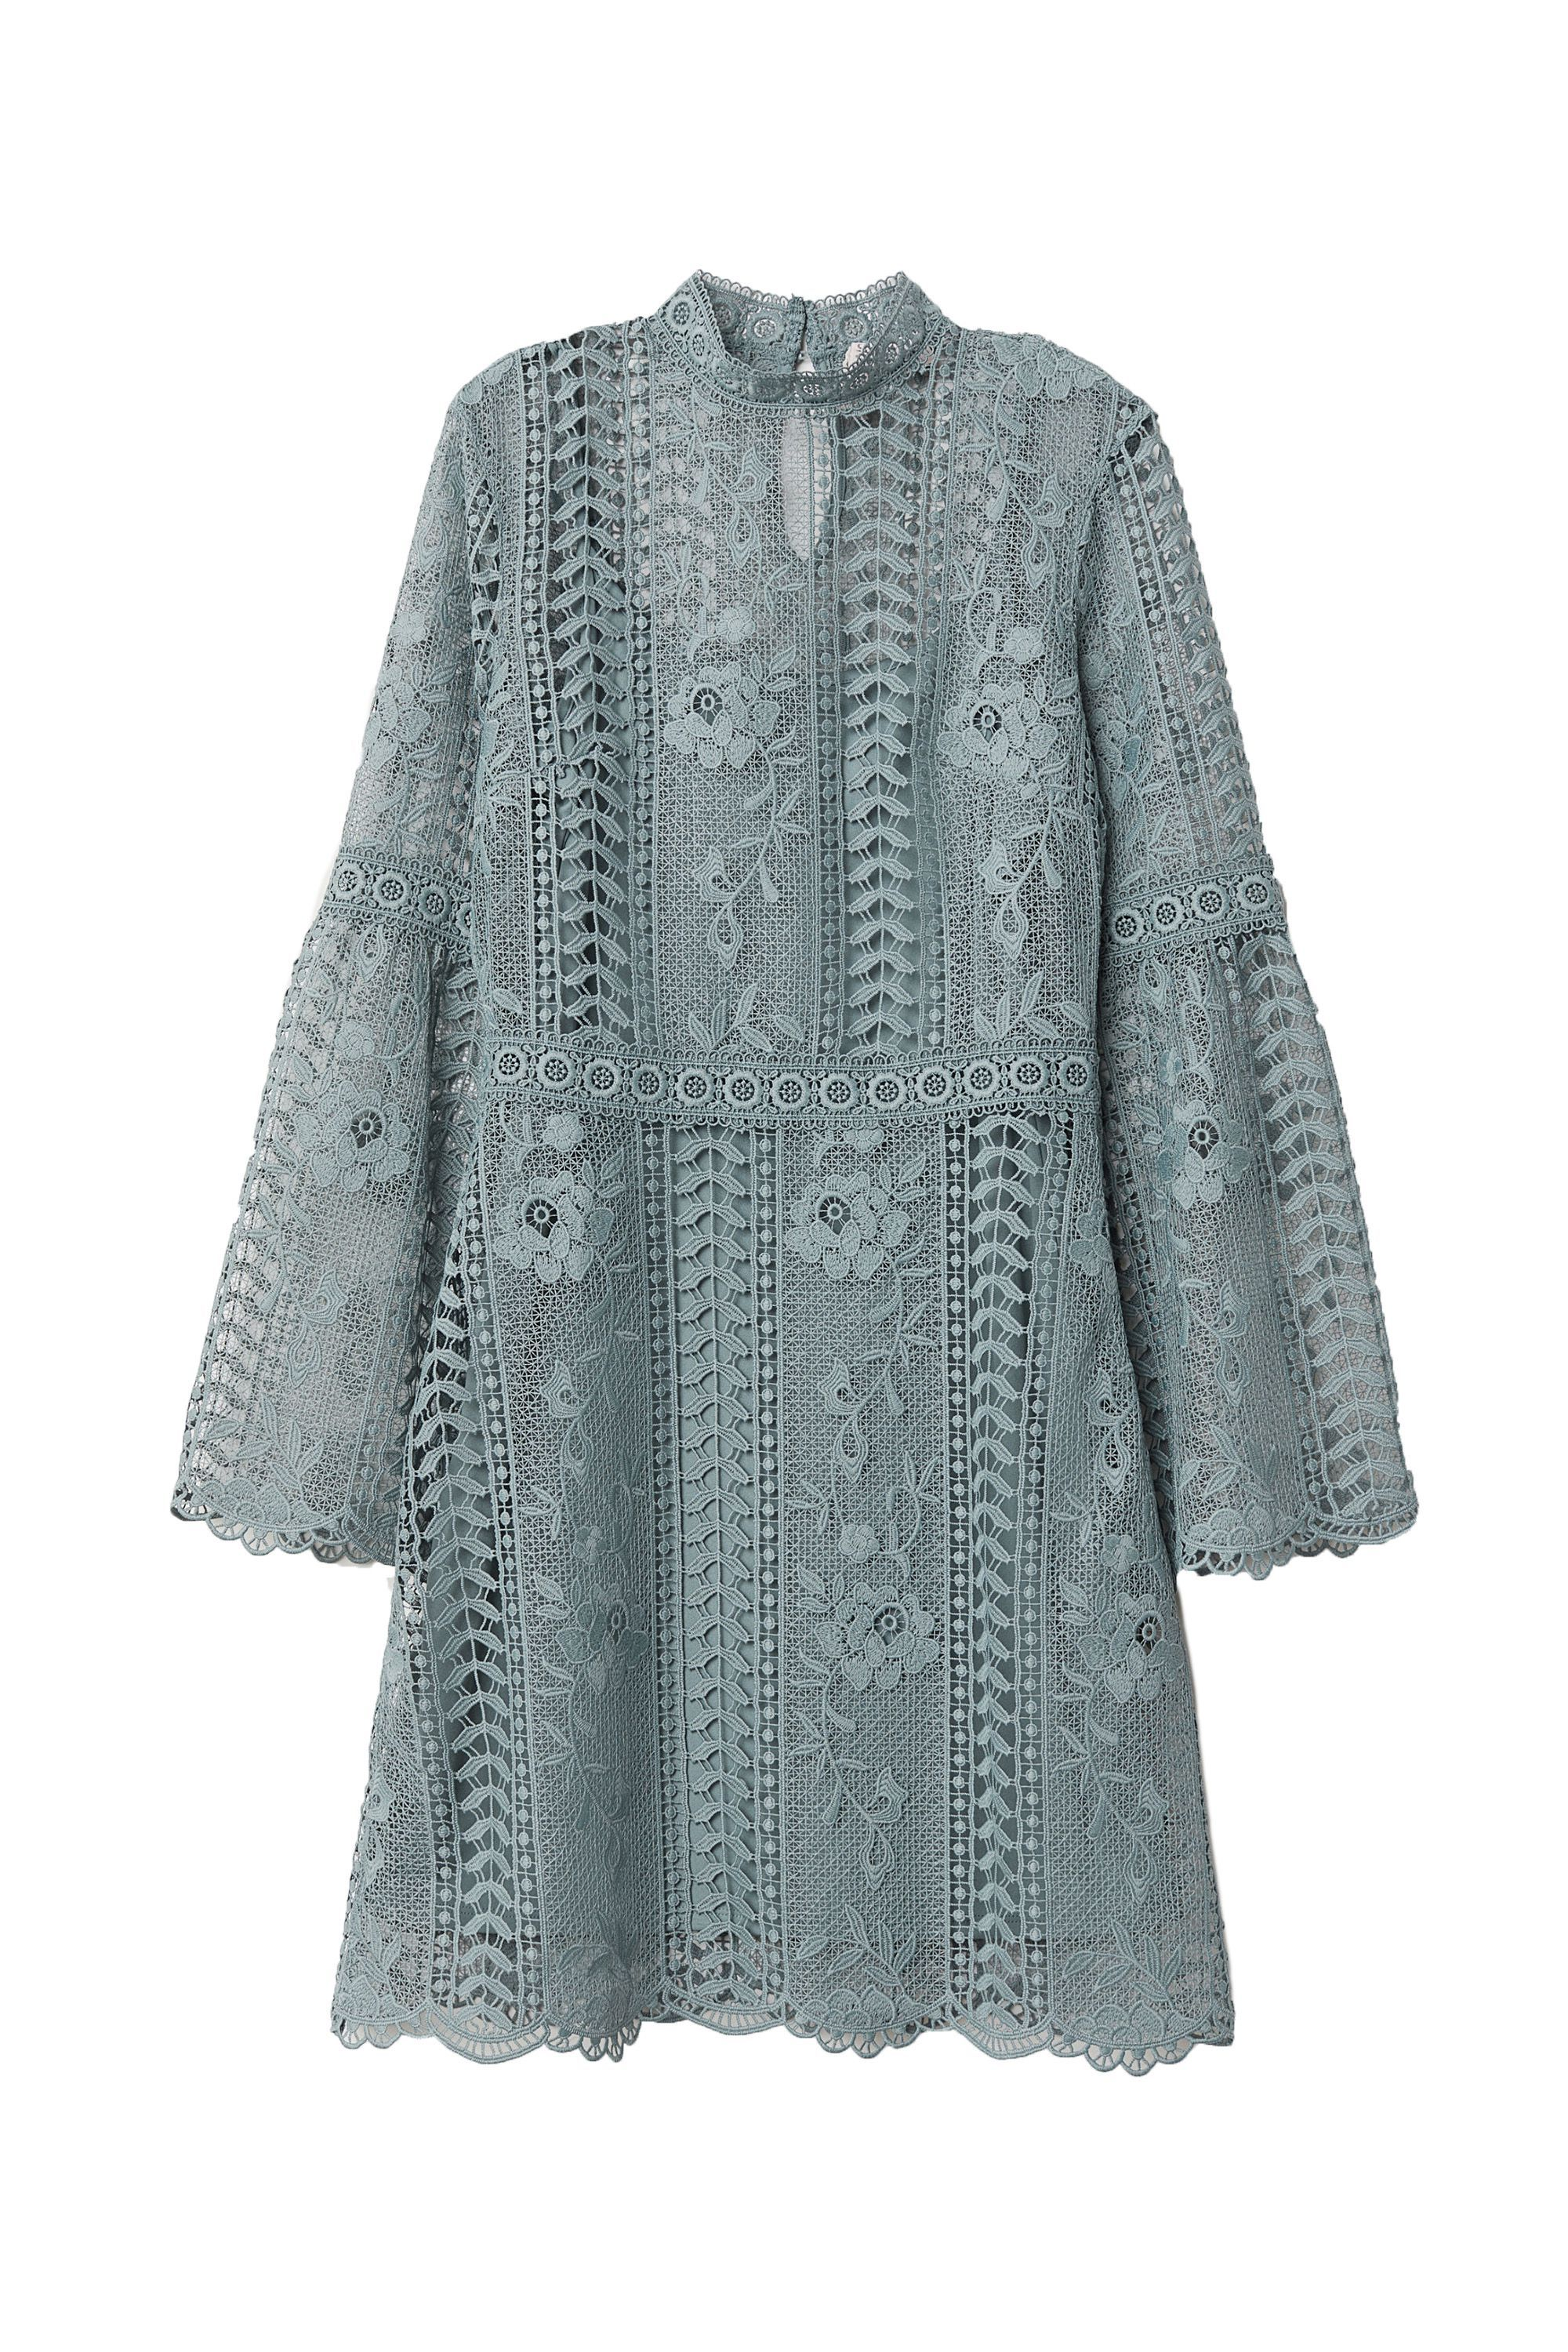 Lace Dress H&M hm.com $59.99 SHOP NOW Be their something blue.